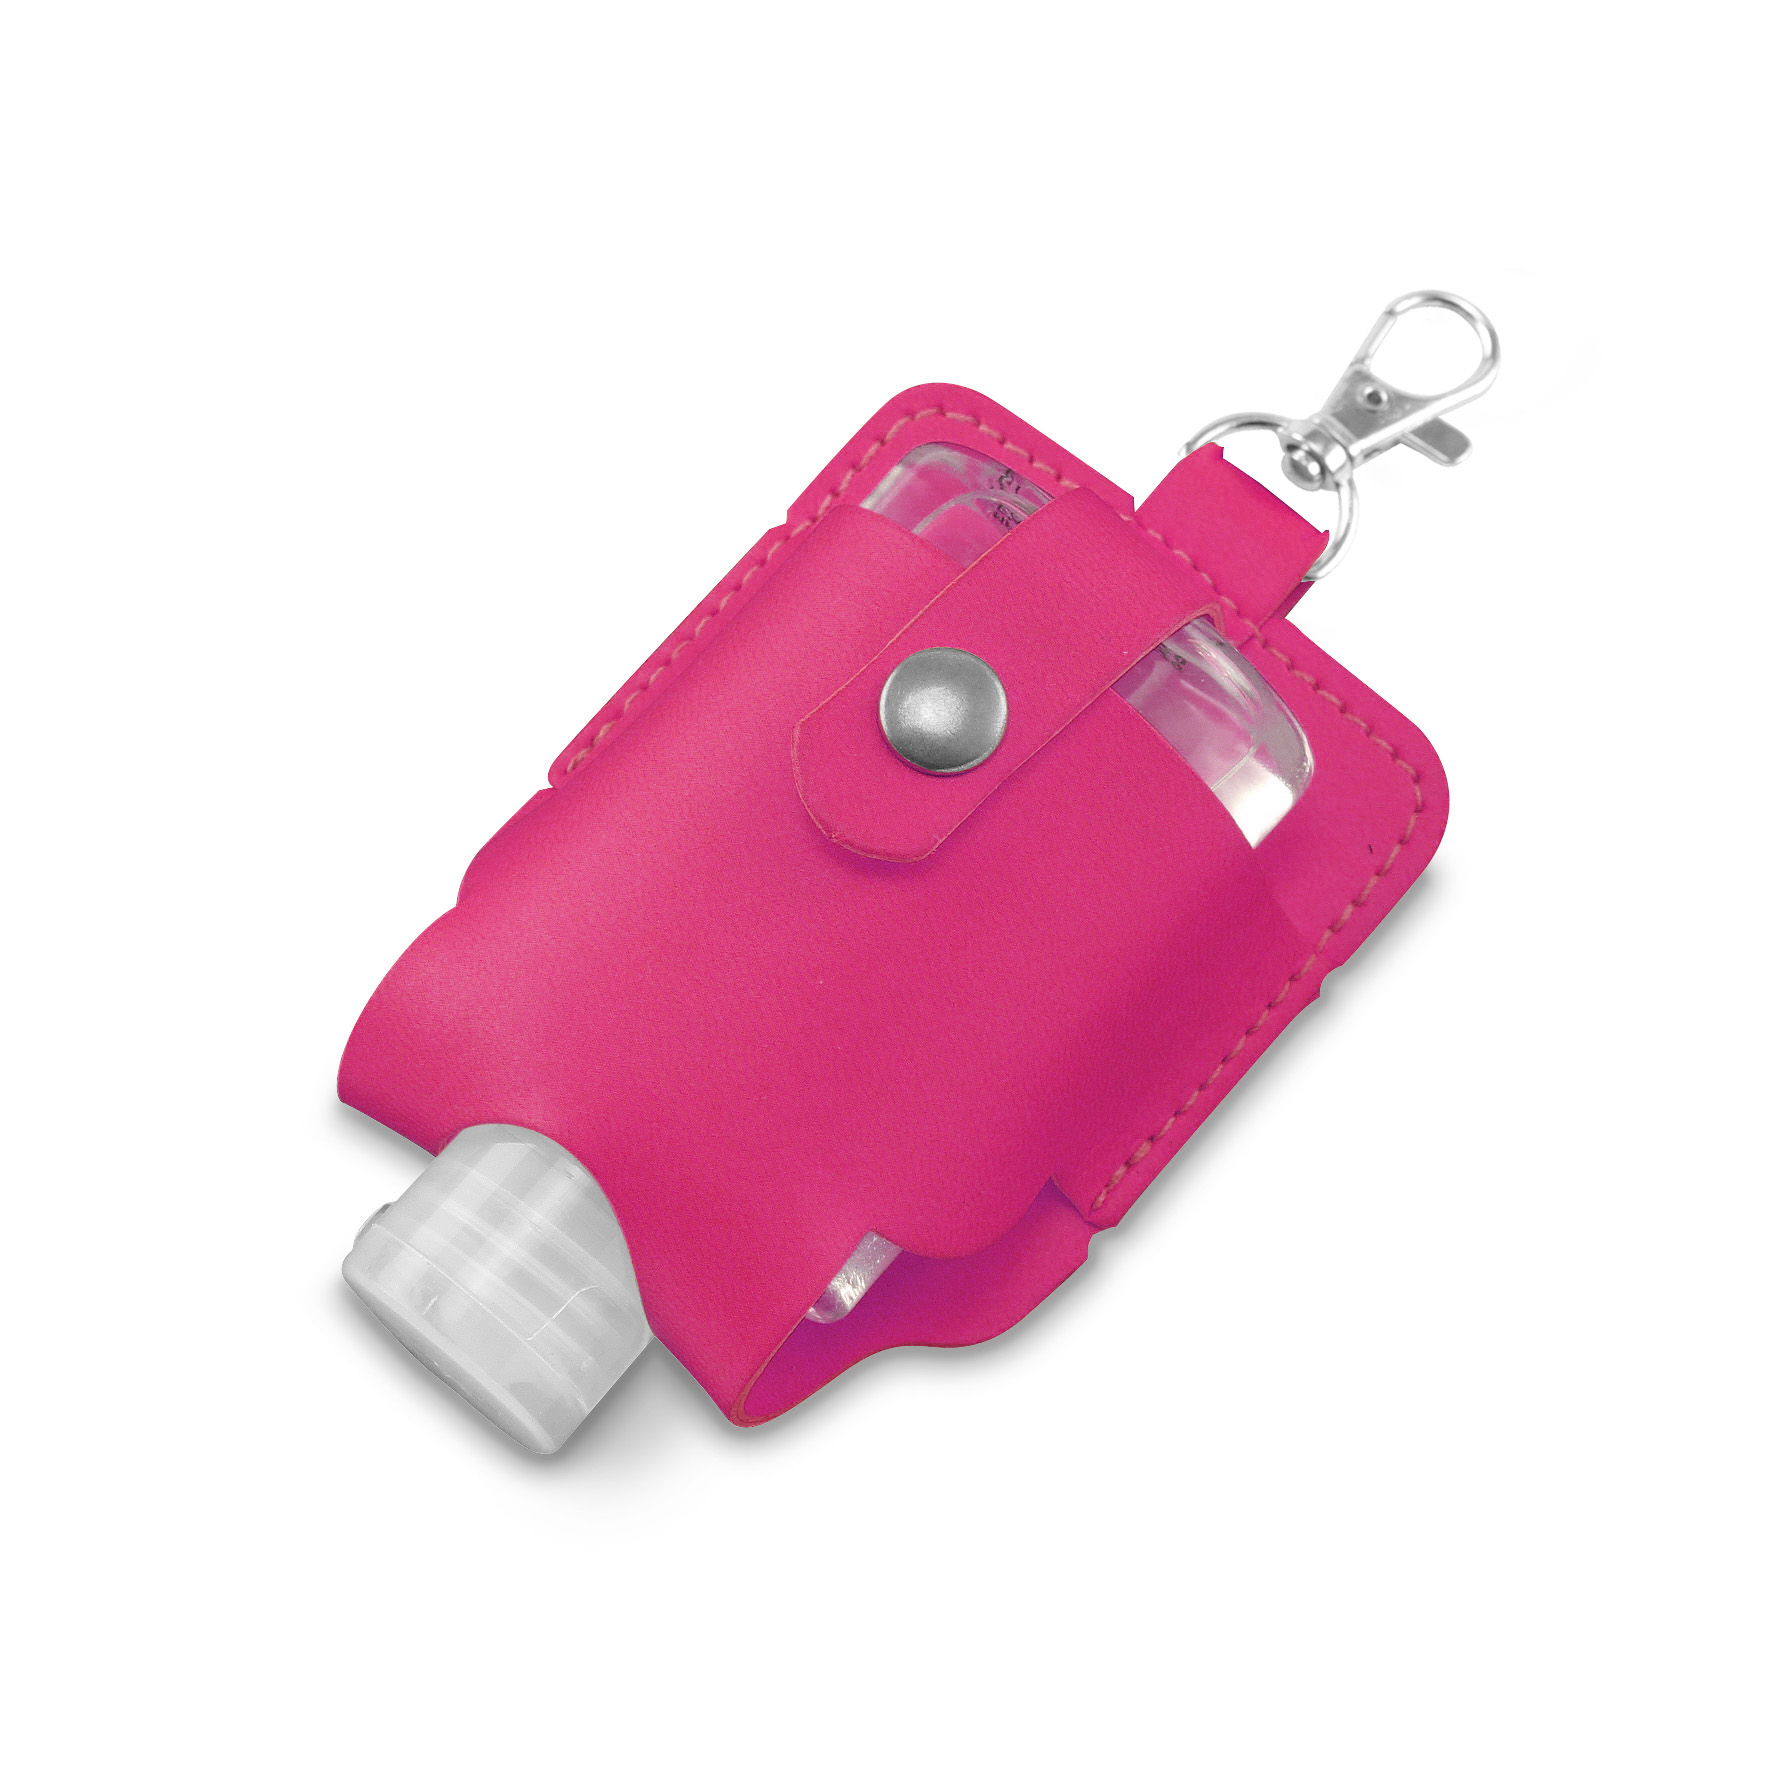 Hot Pink Soft Touch Hand Sanitiser Pouch with Sanitiser